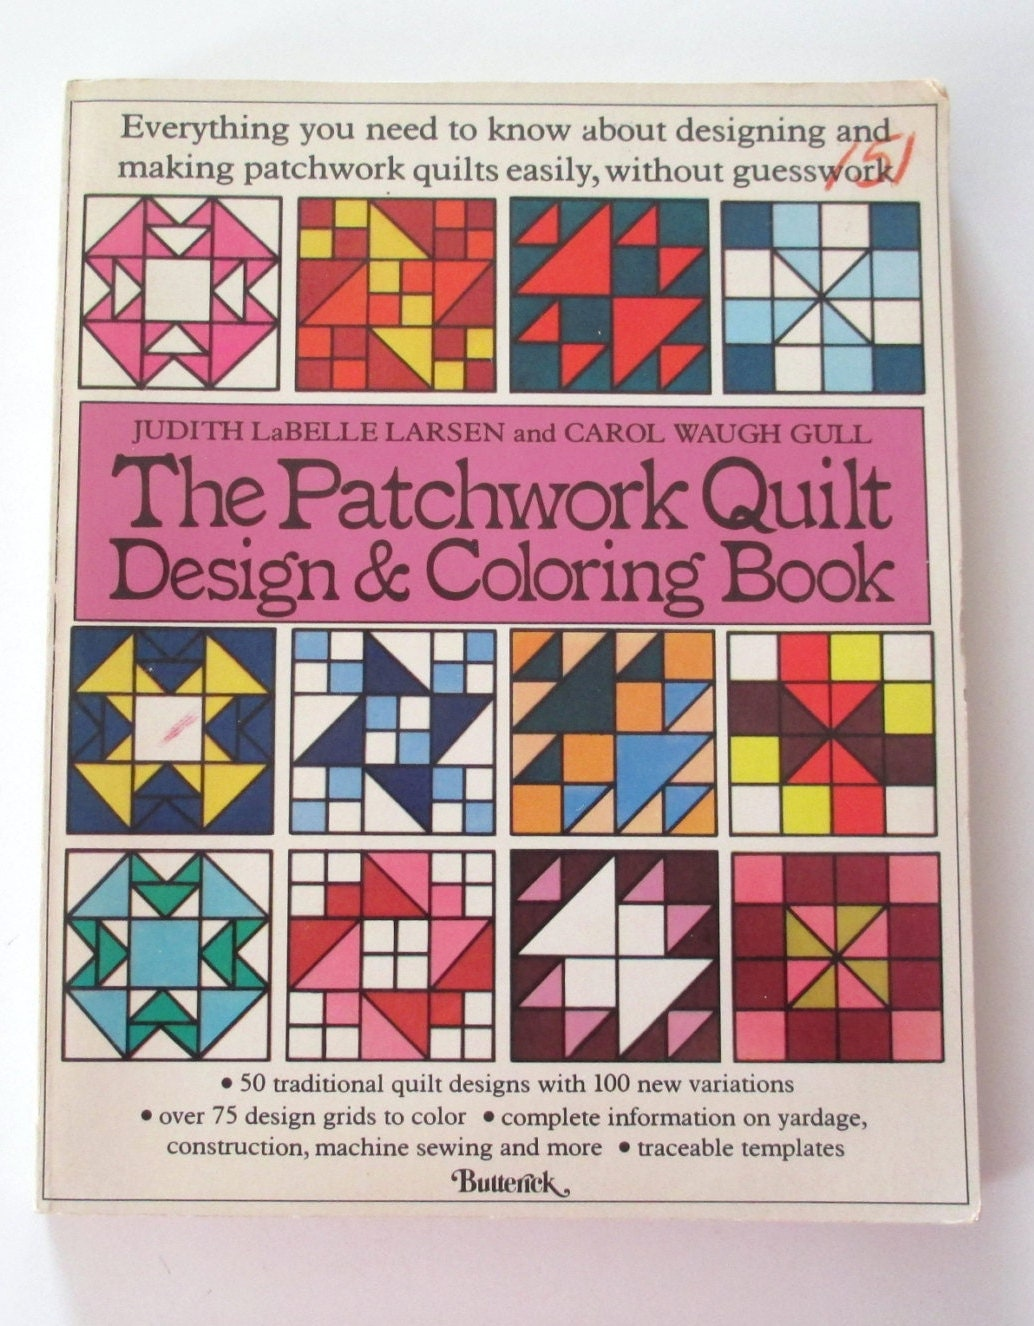 Vintage Patchwork Quilt Design Amp Coloring Book By AStringorTwo